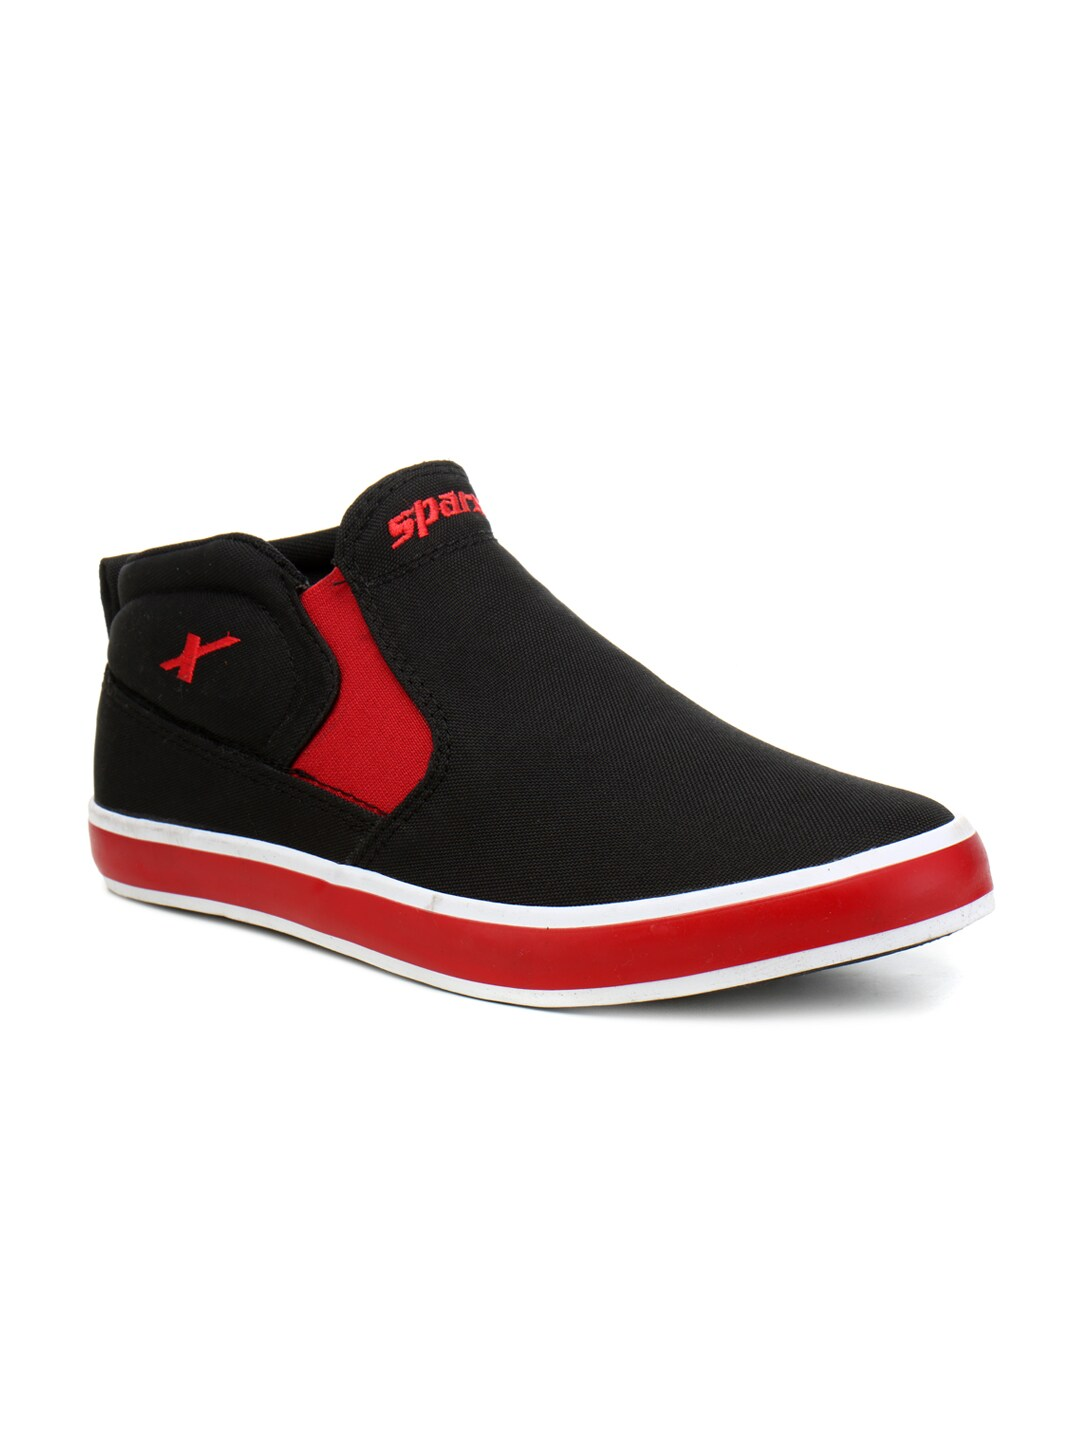 928c74d6c8563c Sparx Casual Shoes - Online Shopping for Sparx Casual Shoe in India